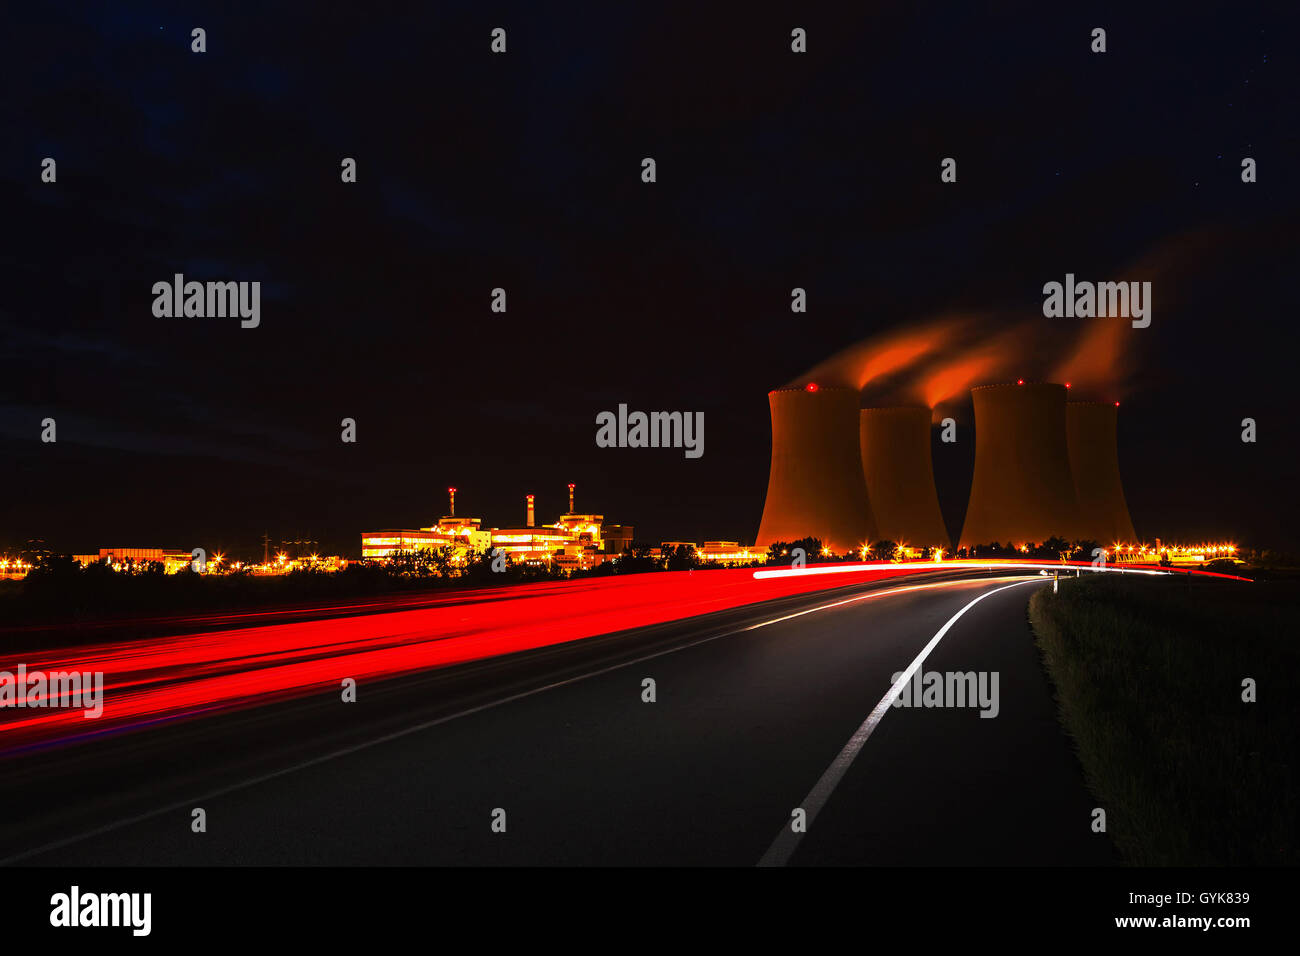 The cooling towers at night, nuclear power generation plant, Temelin, Czech Republic - Stock Image